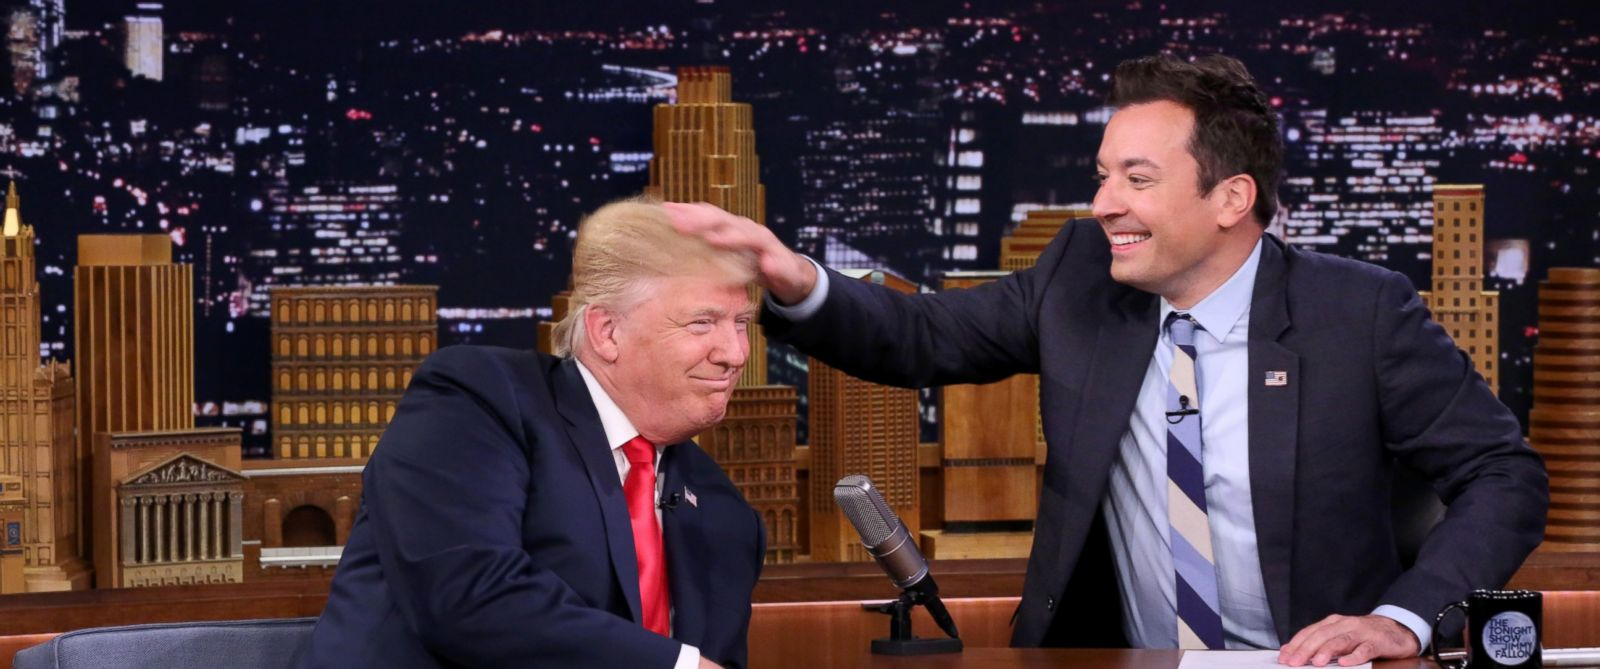 Jimmy Fallon e Donald Trump